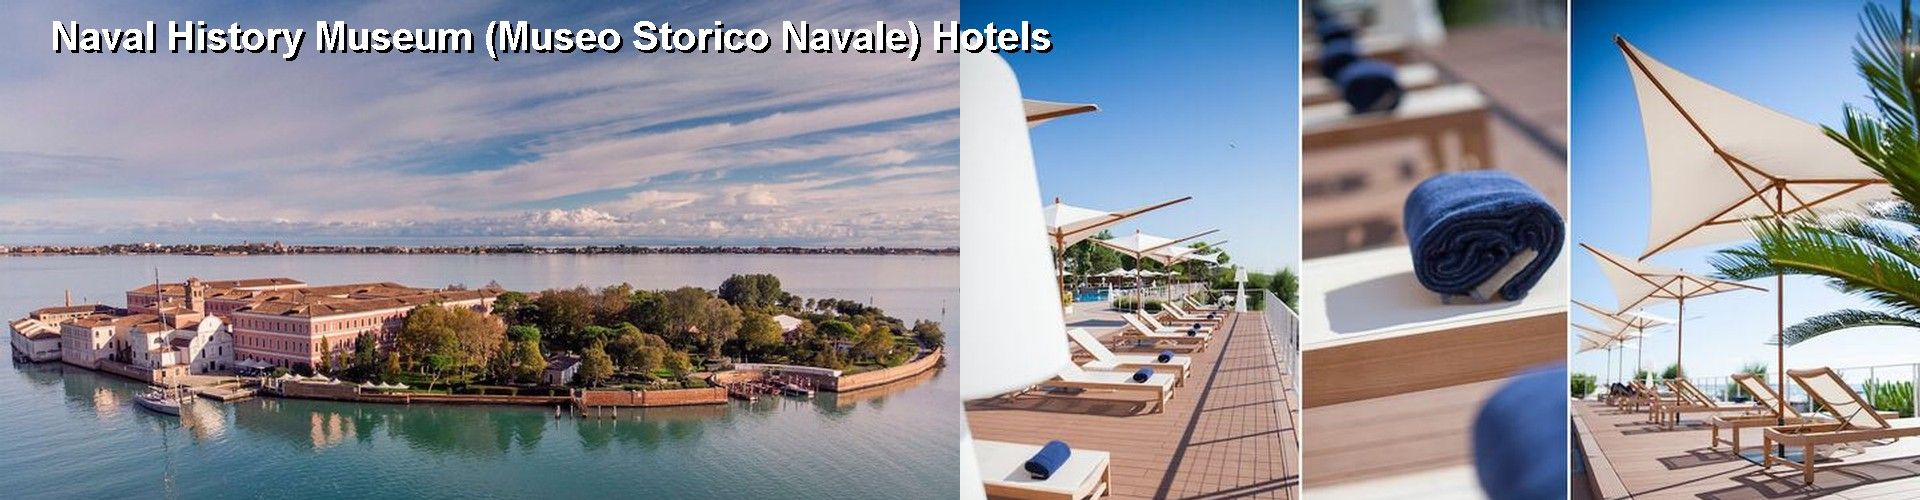 5 Best Hotels near Naval History Museum (Museo Storico Navale)